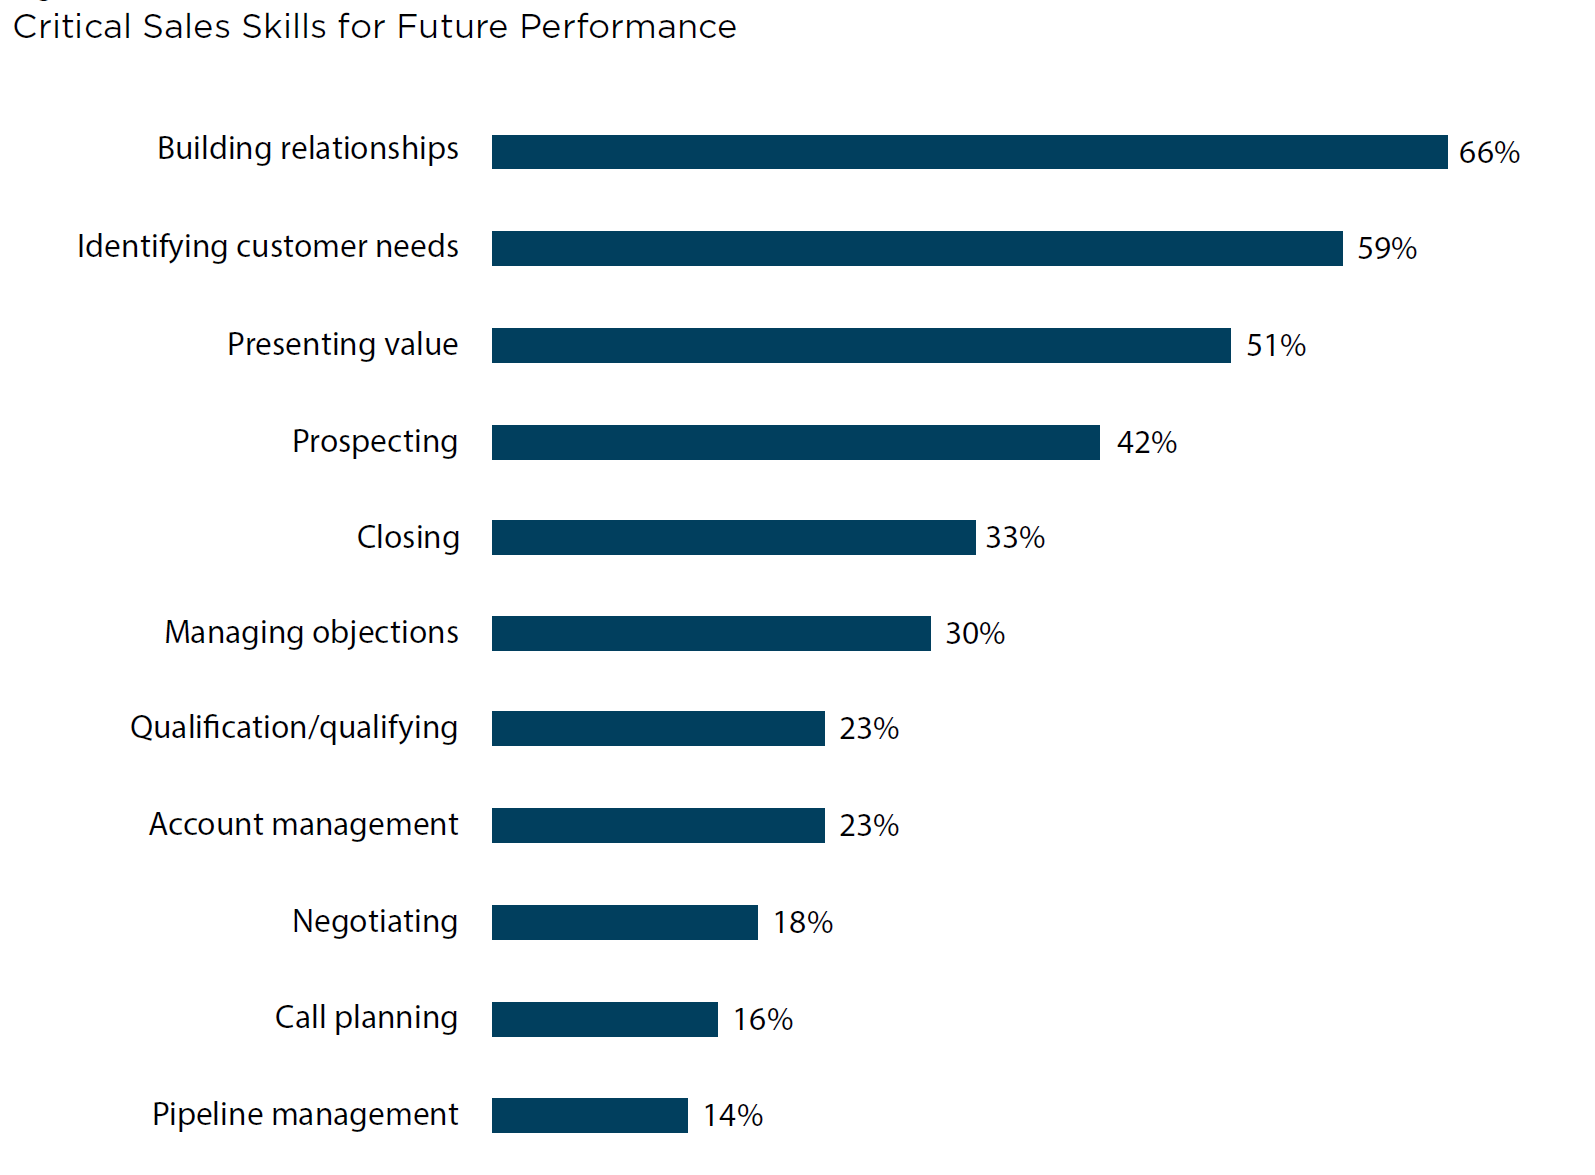 critical sales skills for future performance